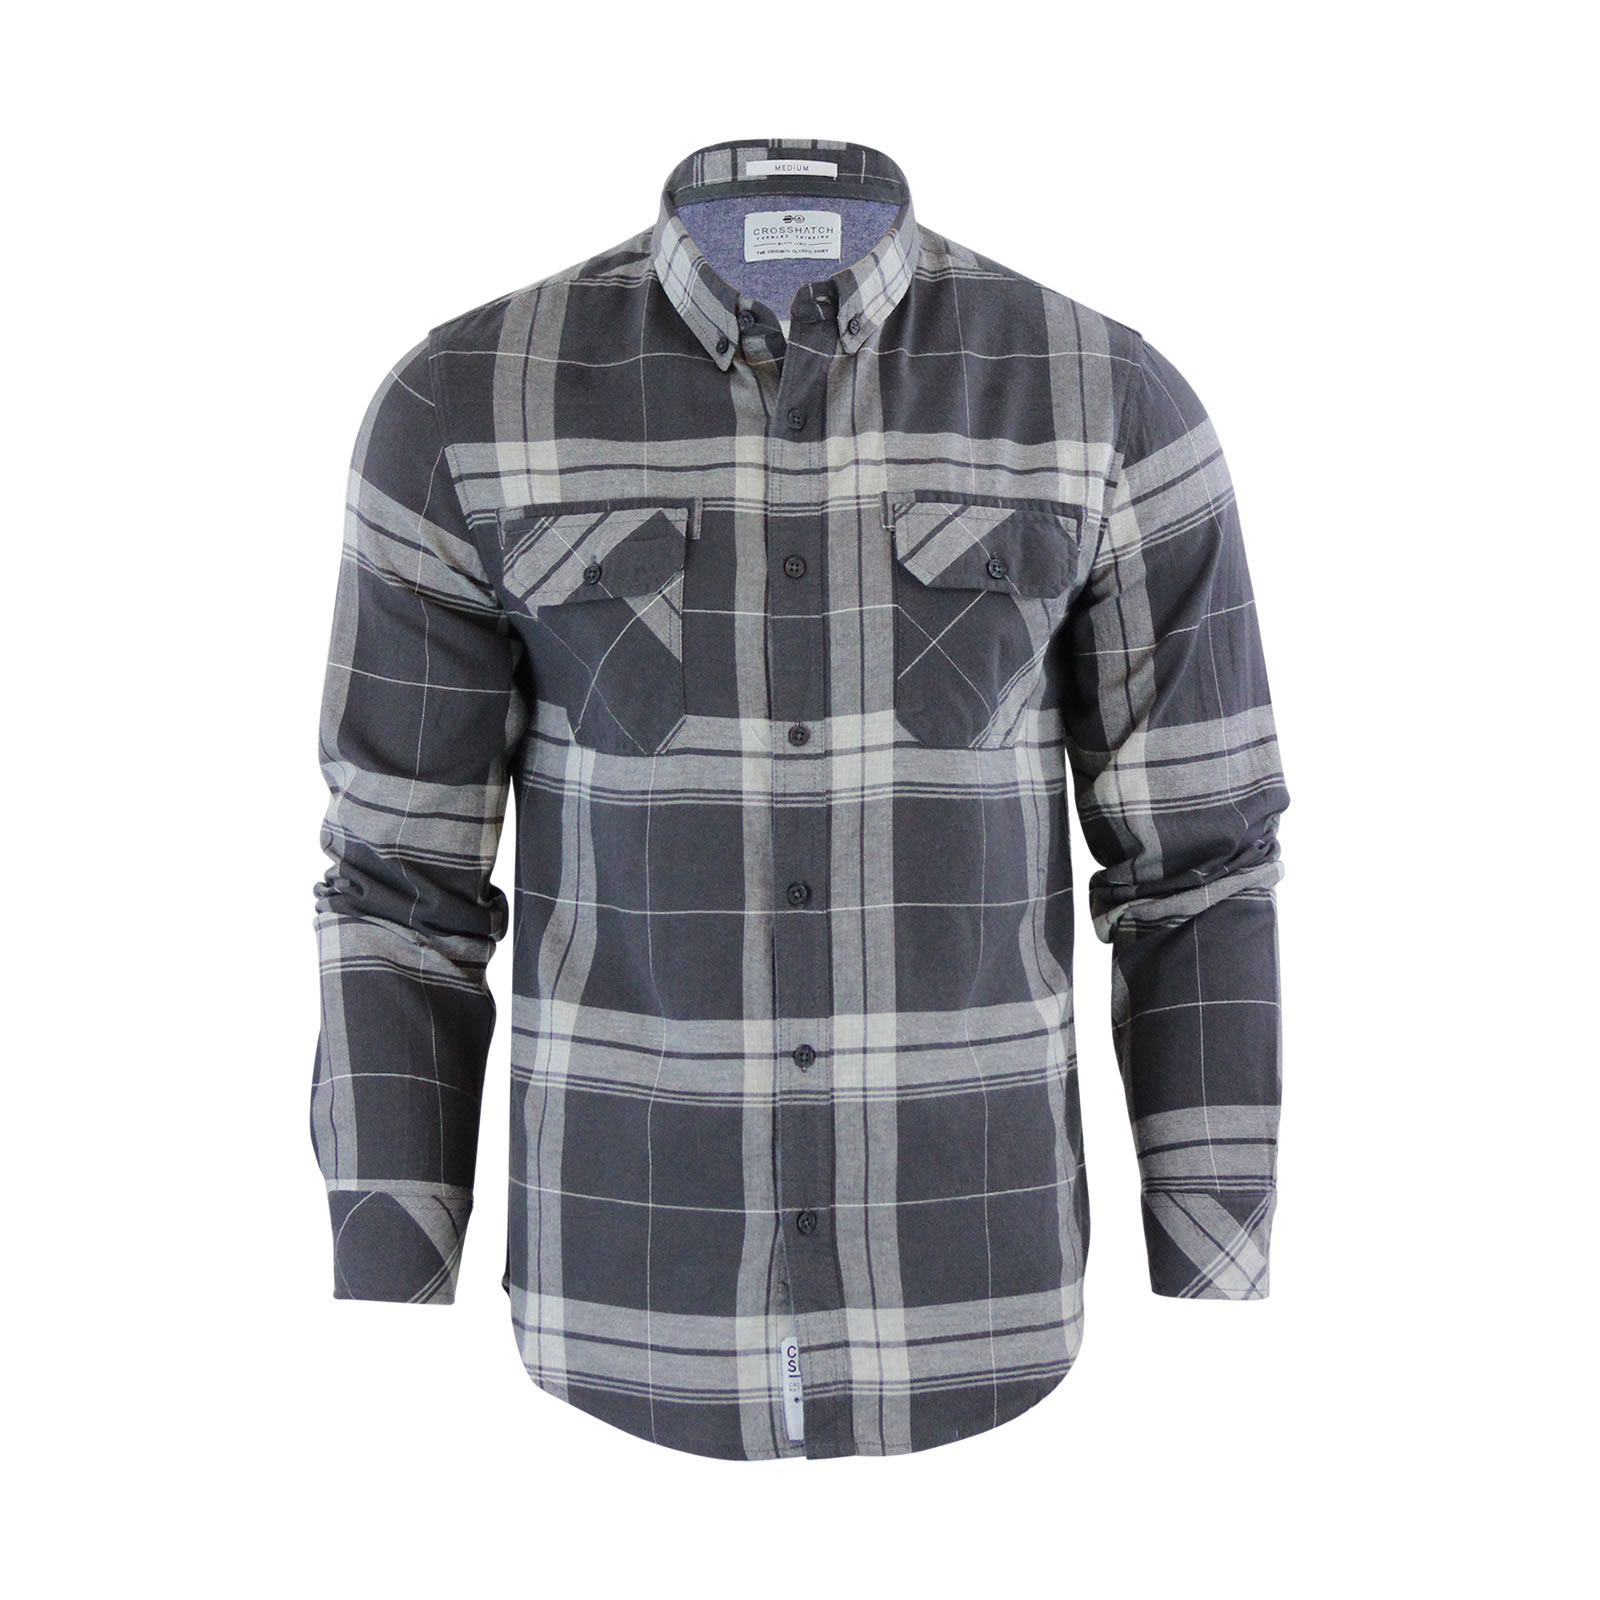 Mens-Check-Shirt-Crosshatch-Mitty-Cotton-Collared-Long-Sleeve-Casual-Top